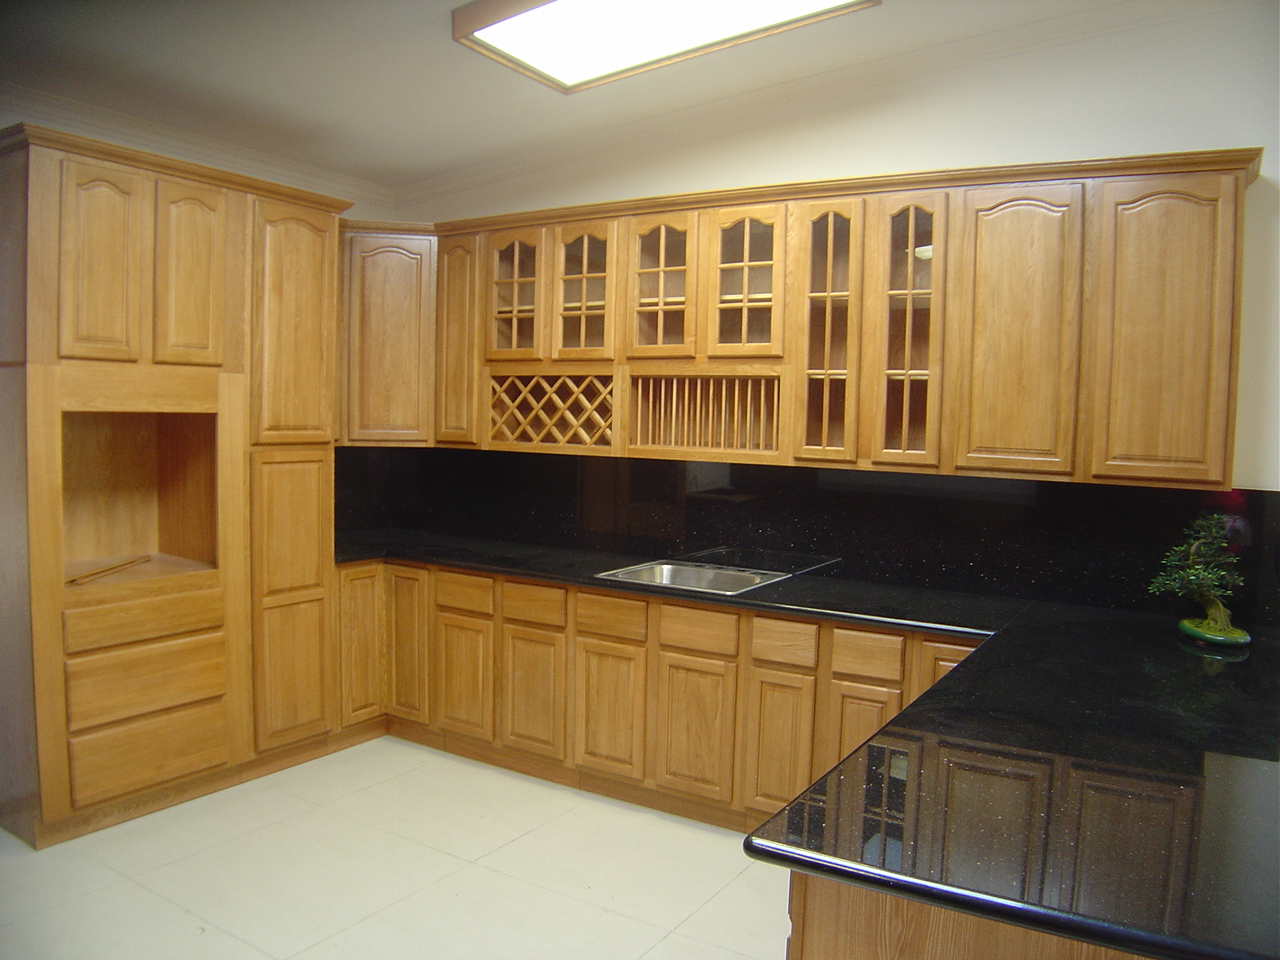 Oak kitchen cabinets for your interior kitchen minimalist for New kitchen cabinet designs